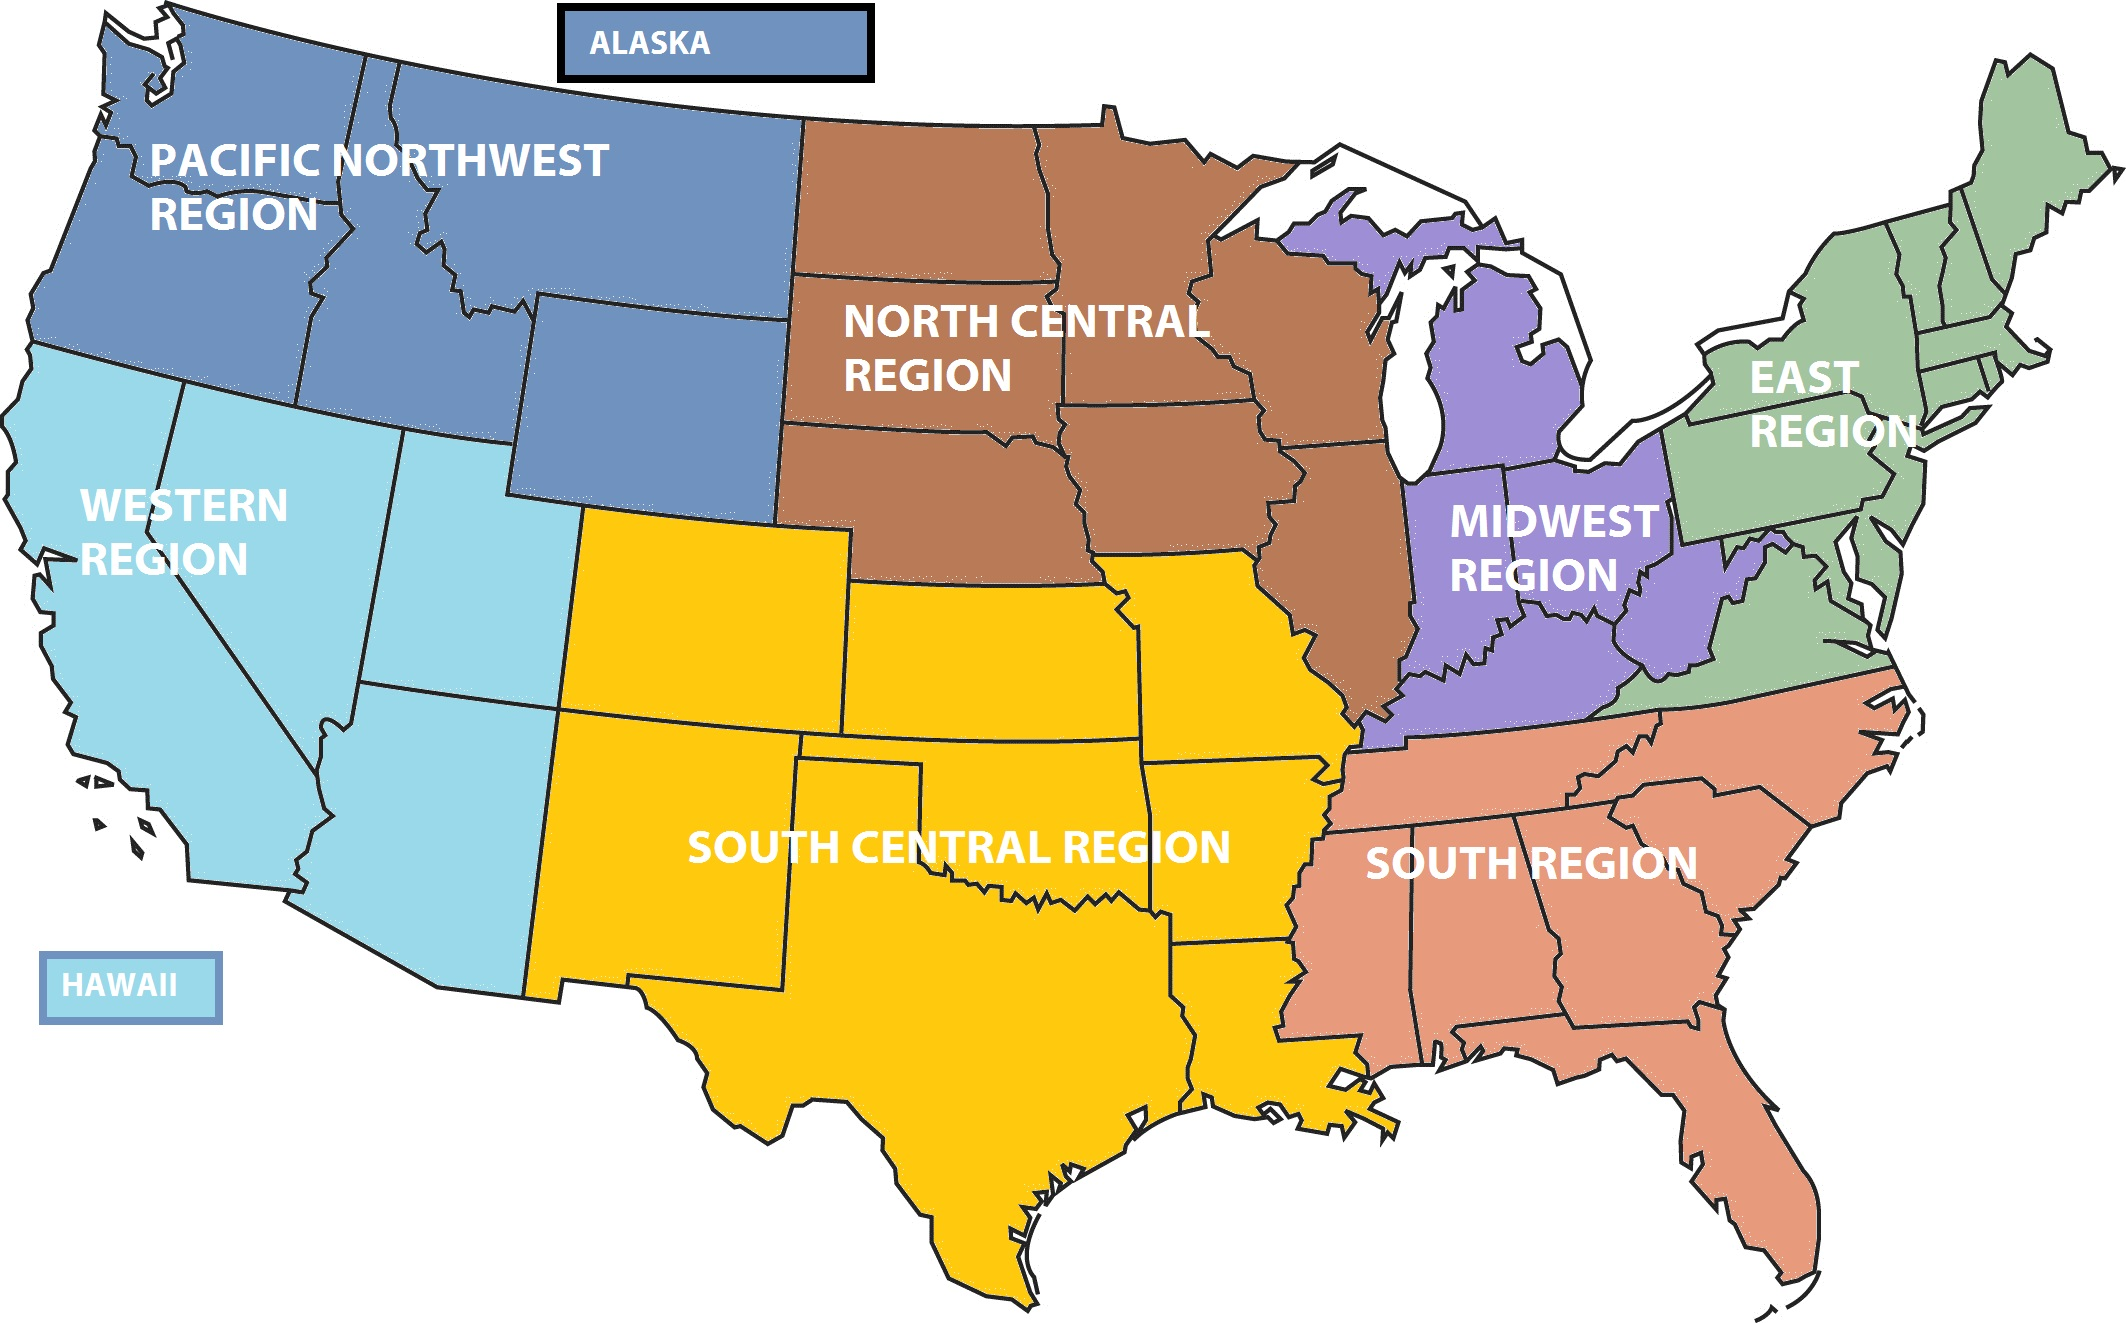 The Cardinal Directions Geography Song YouTube East Coast USA - Us map east west midwest